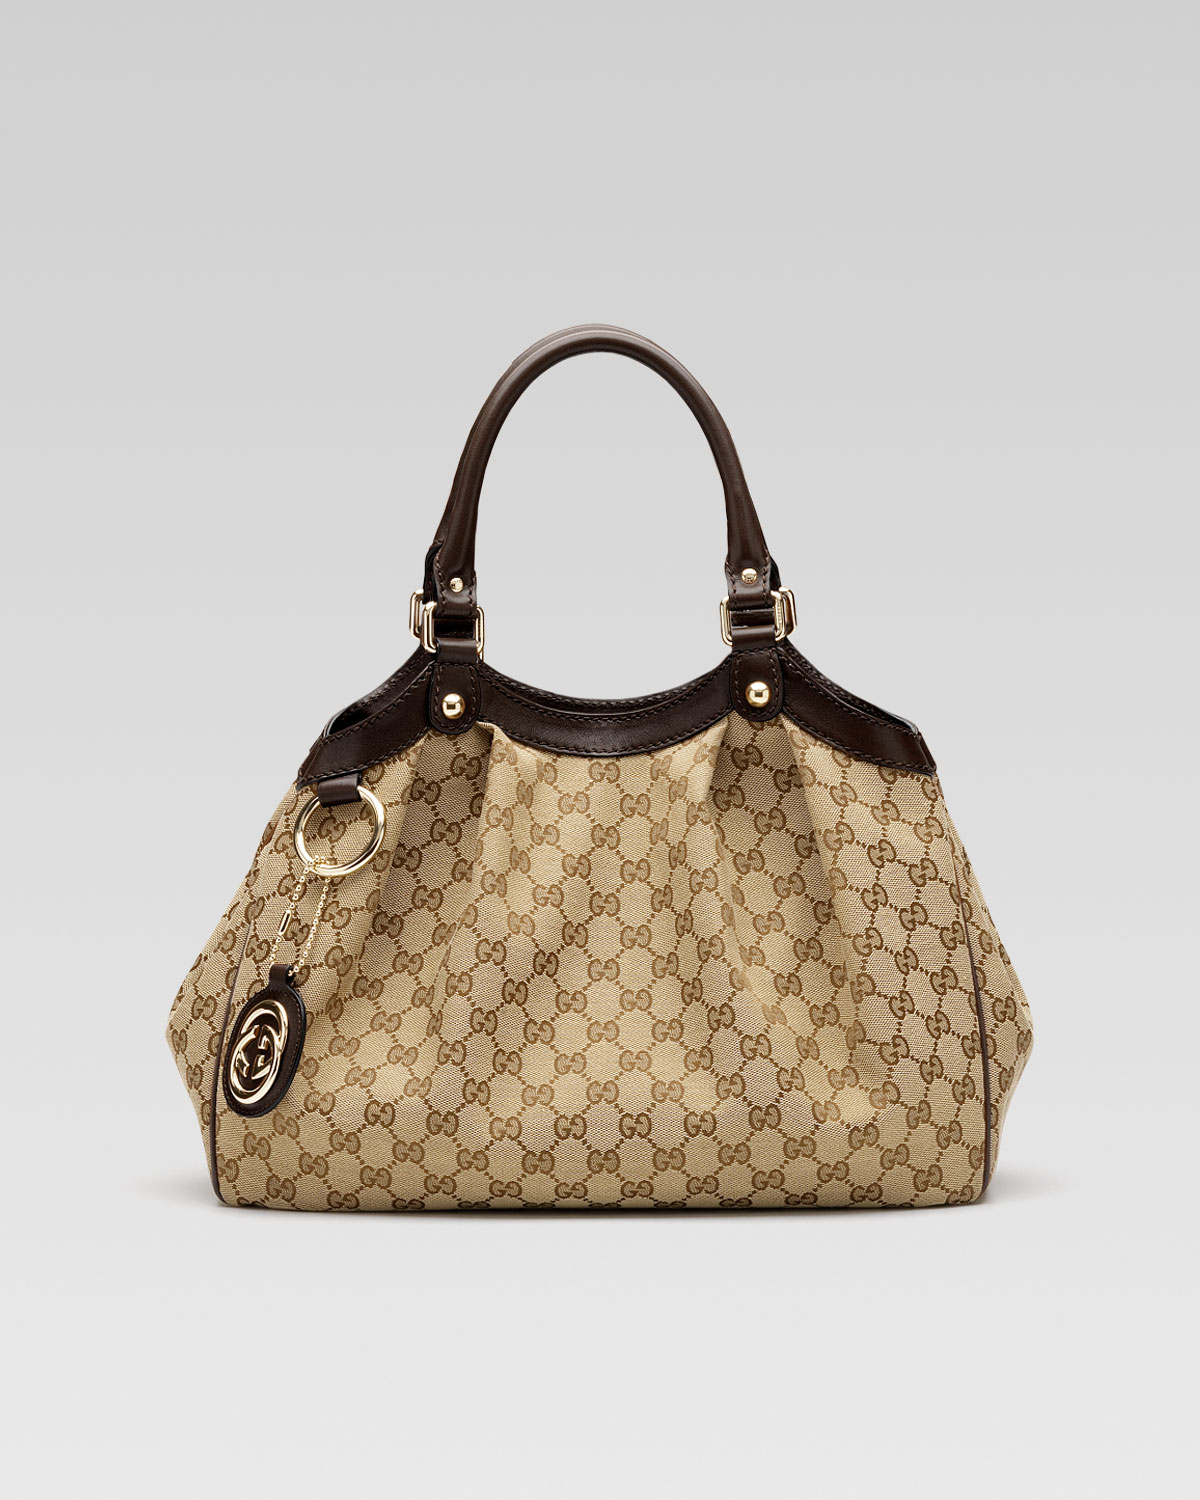 gucci large sukey tote bag in beige